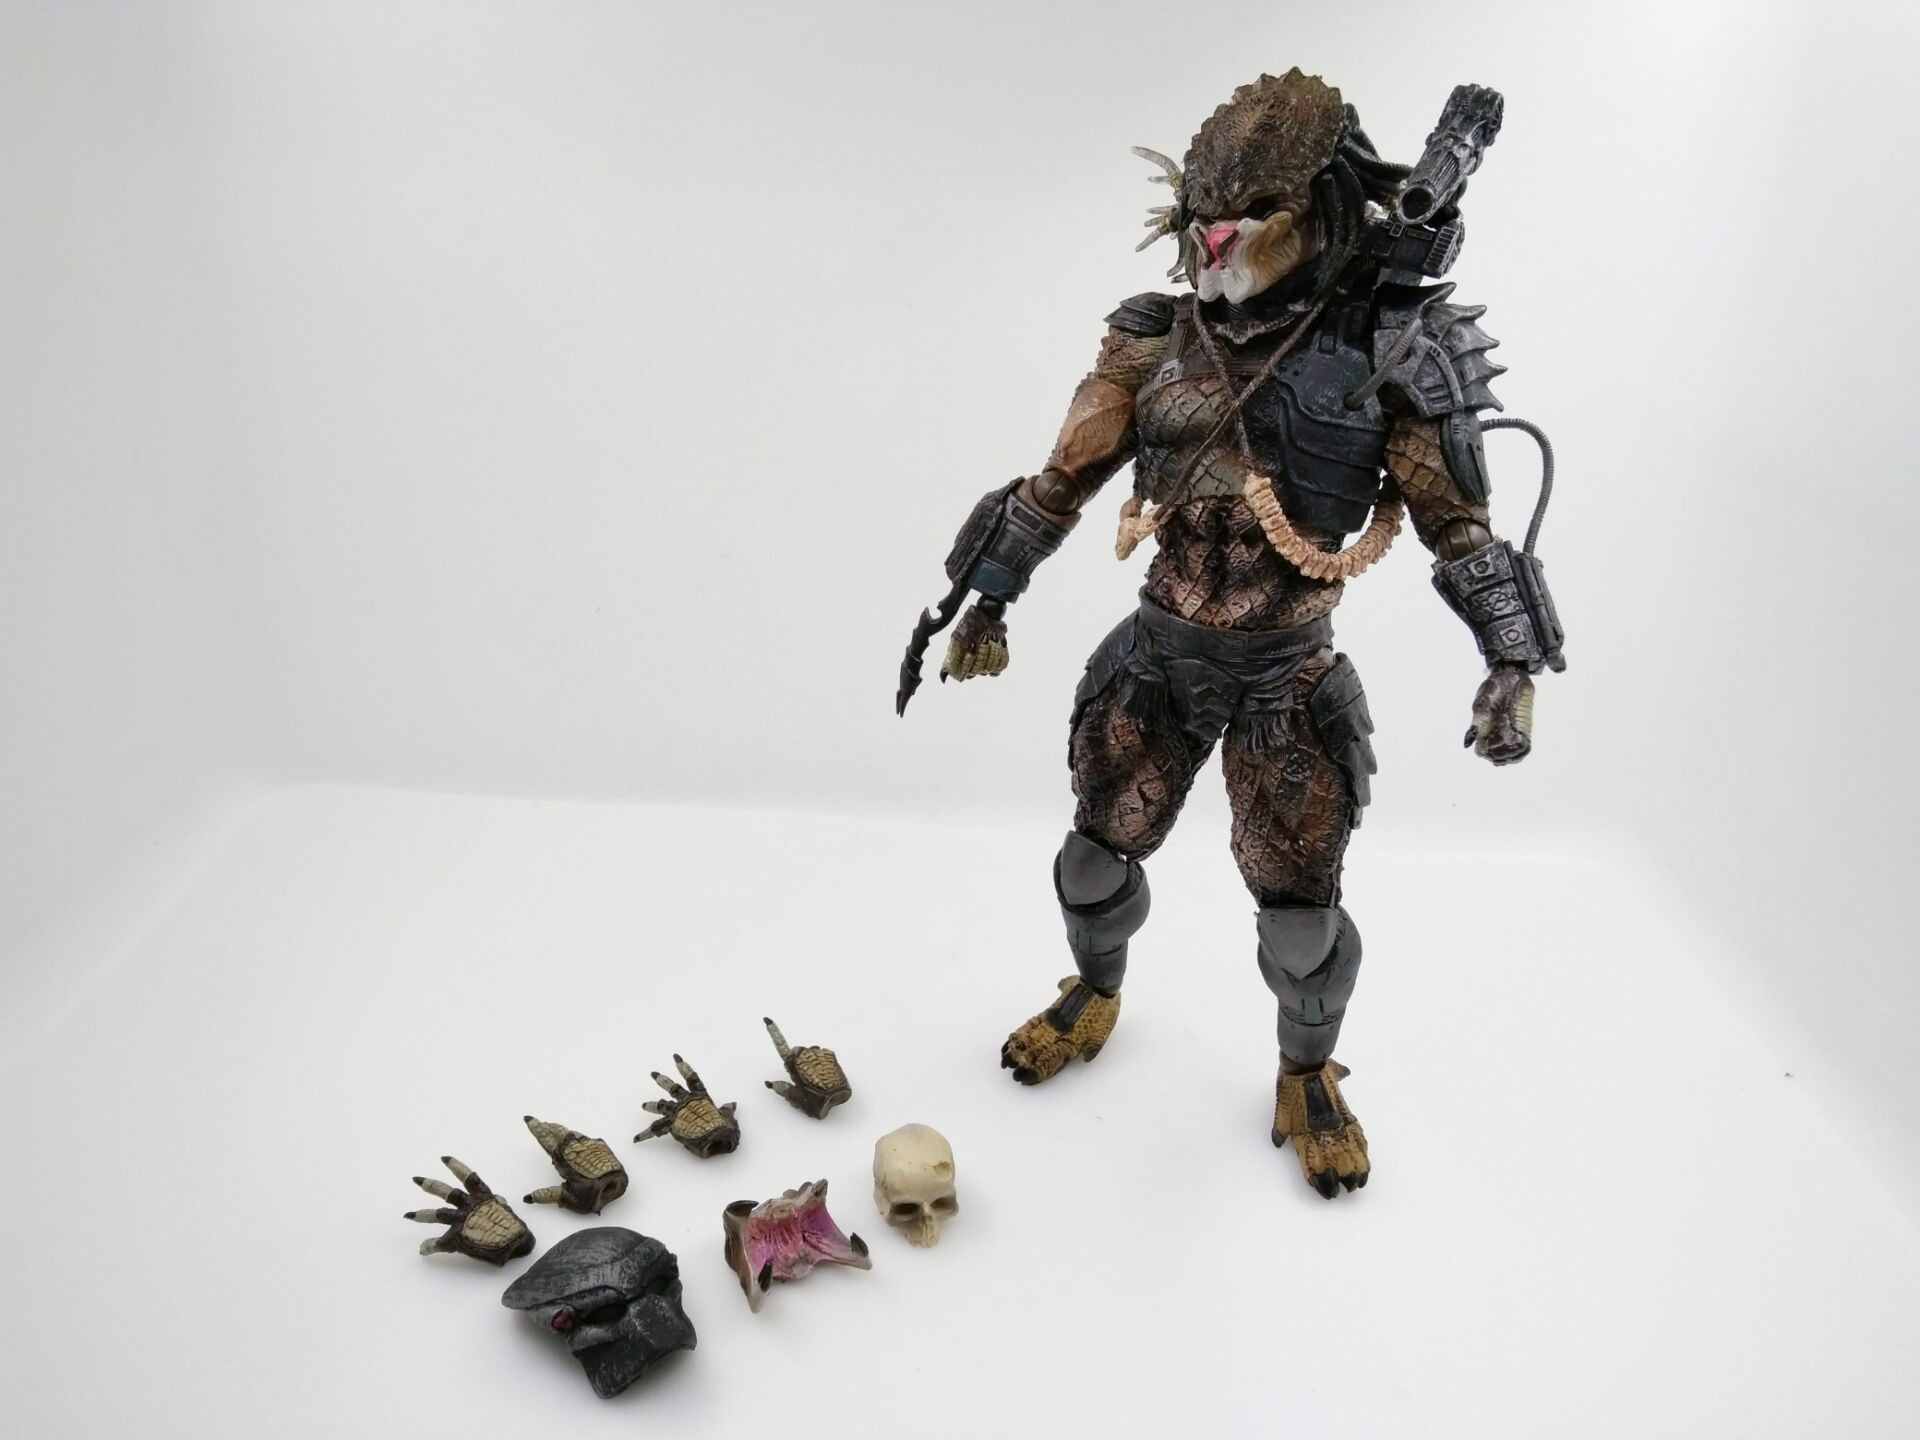 WVW 27CM Hot Sale Movie Hero Predator Alien Play Arts Model PVC Toy Action Figure Decoration For Collection Gift cartoon fight hero star model desktop decoration gift